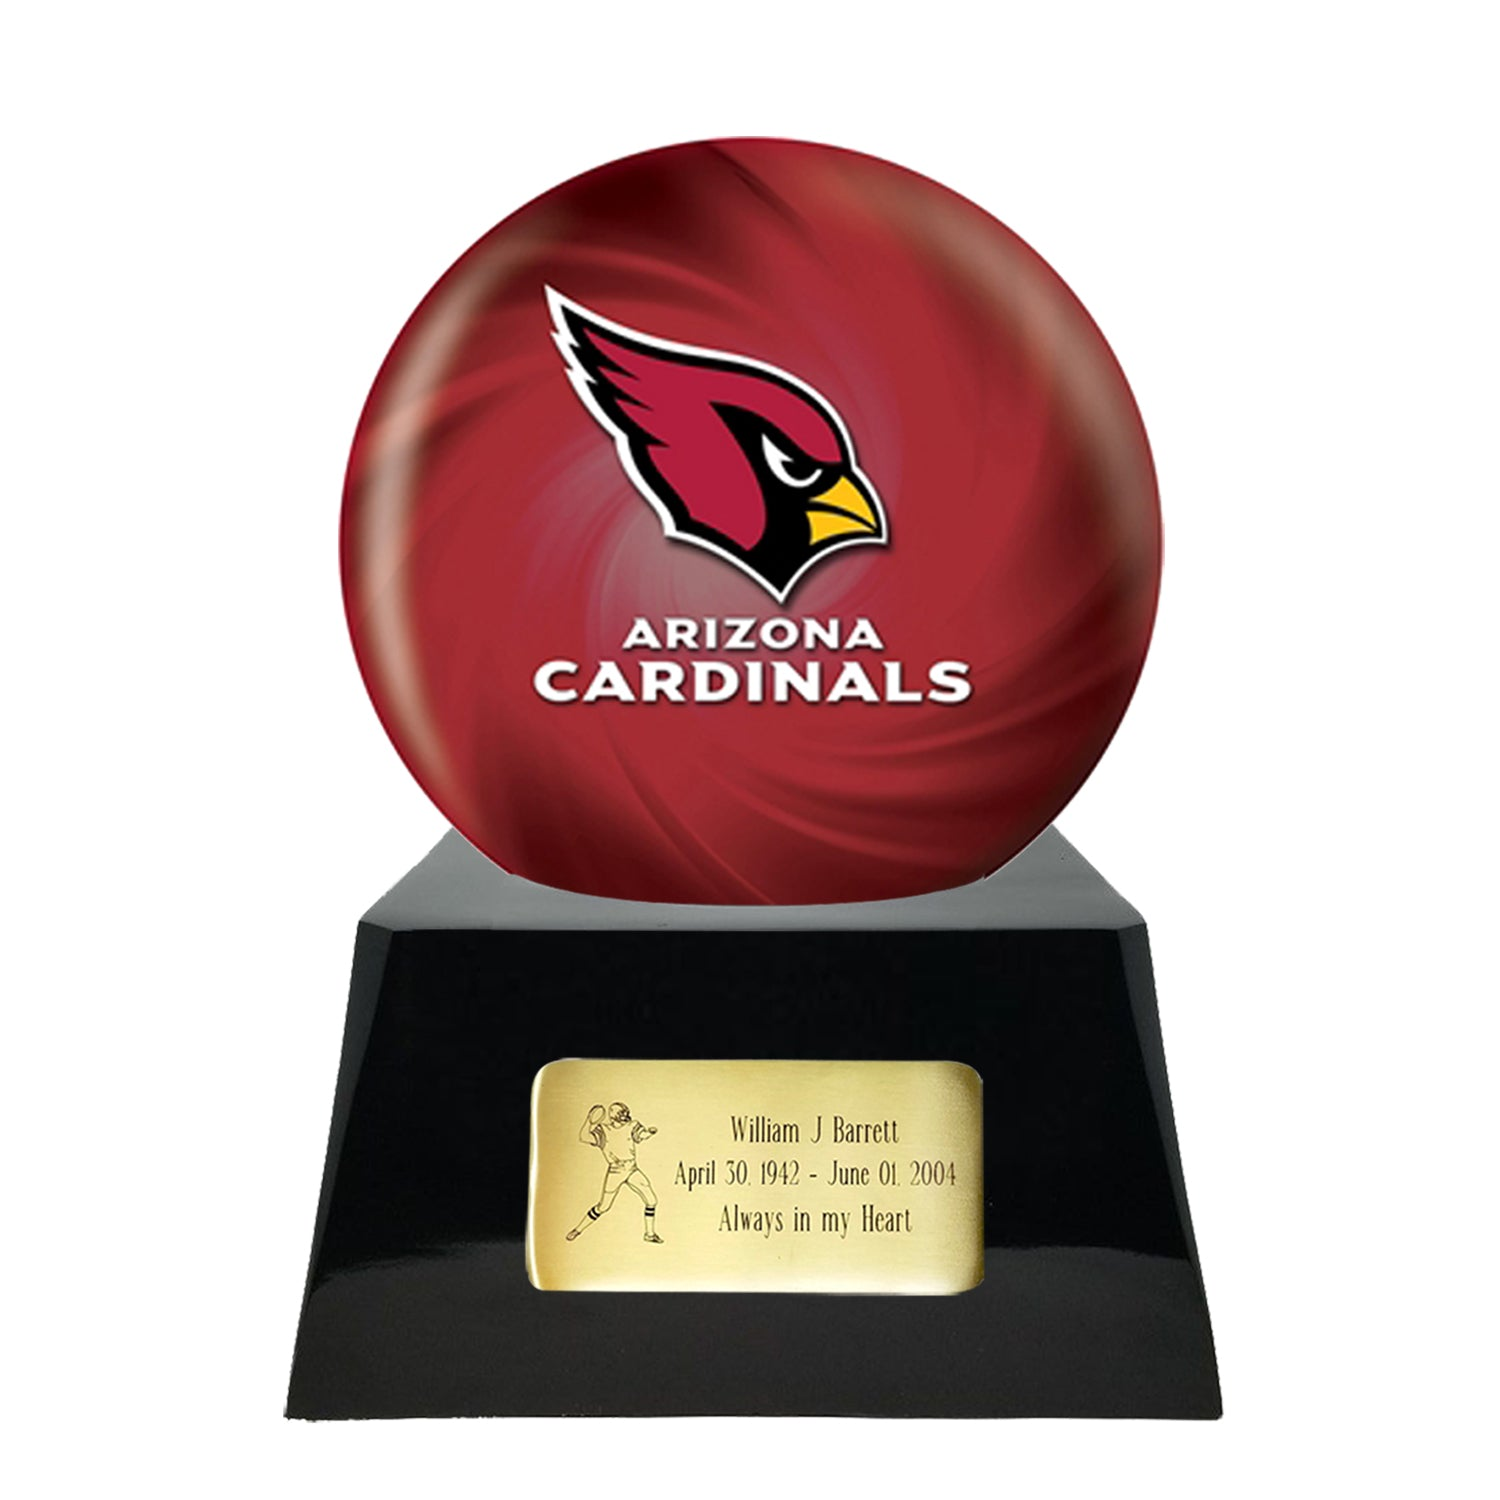 Football Team Urn For Ashes - Football Cremation Urn and Arizona Cardinals Ball Decor with Custom Metal Plaque